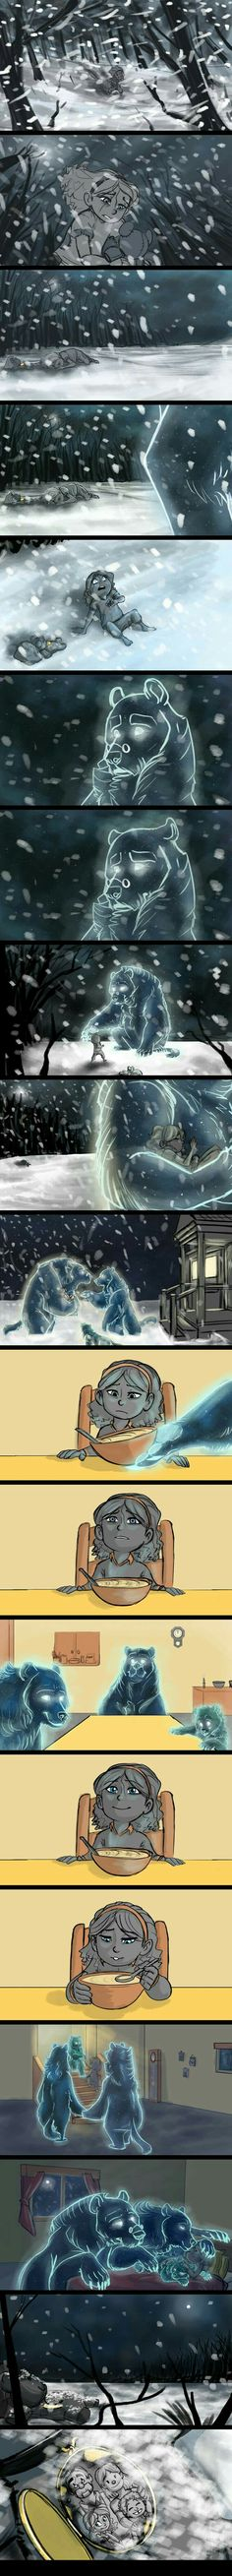 Goldilocks- Storyboard Project by on DeviantArt - feels - Funny Triste Disney, Comics Story, Cute Stories, Short Stories, Short Comics, Funny Comics, Storyboard, Cute Art, Comic Strips